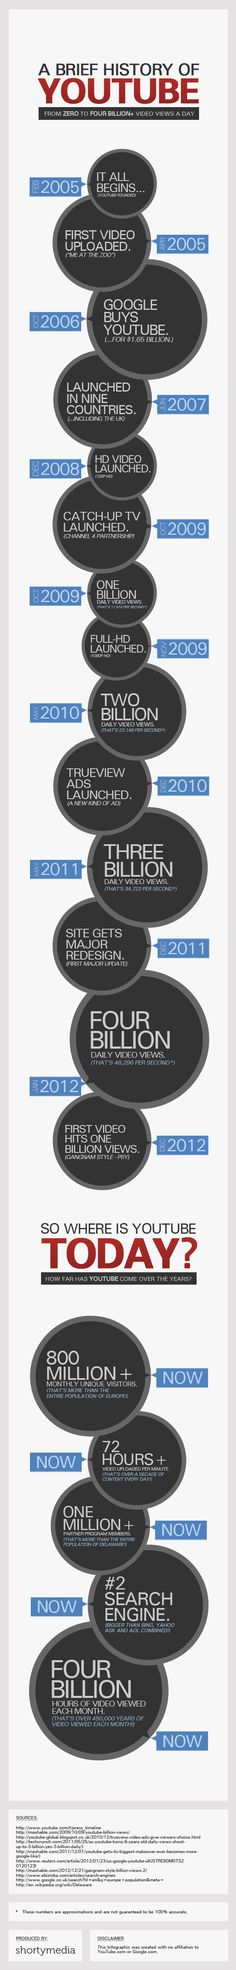 a brief history of youtube infographic shortymedia YouTubes 8th Birthday: From Zero to 4+ Billion Views [Infographic]